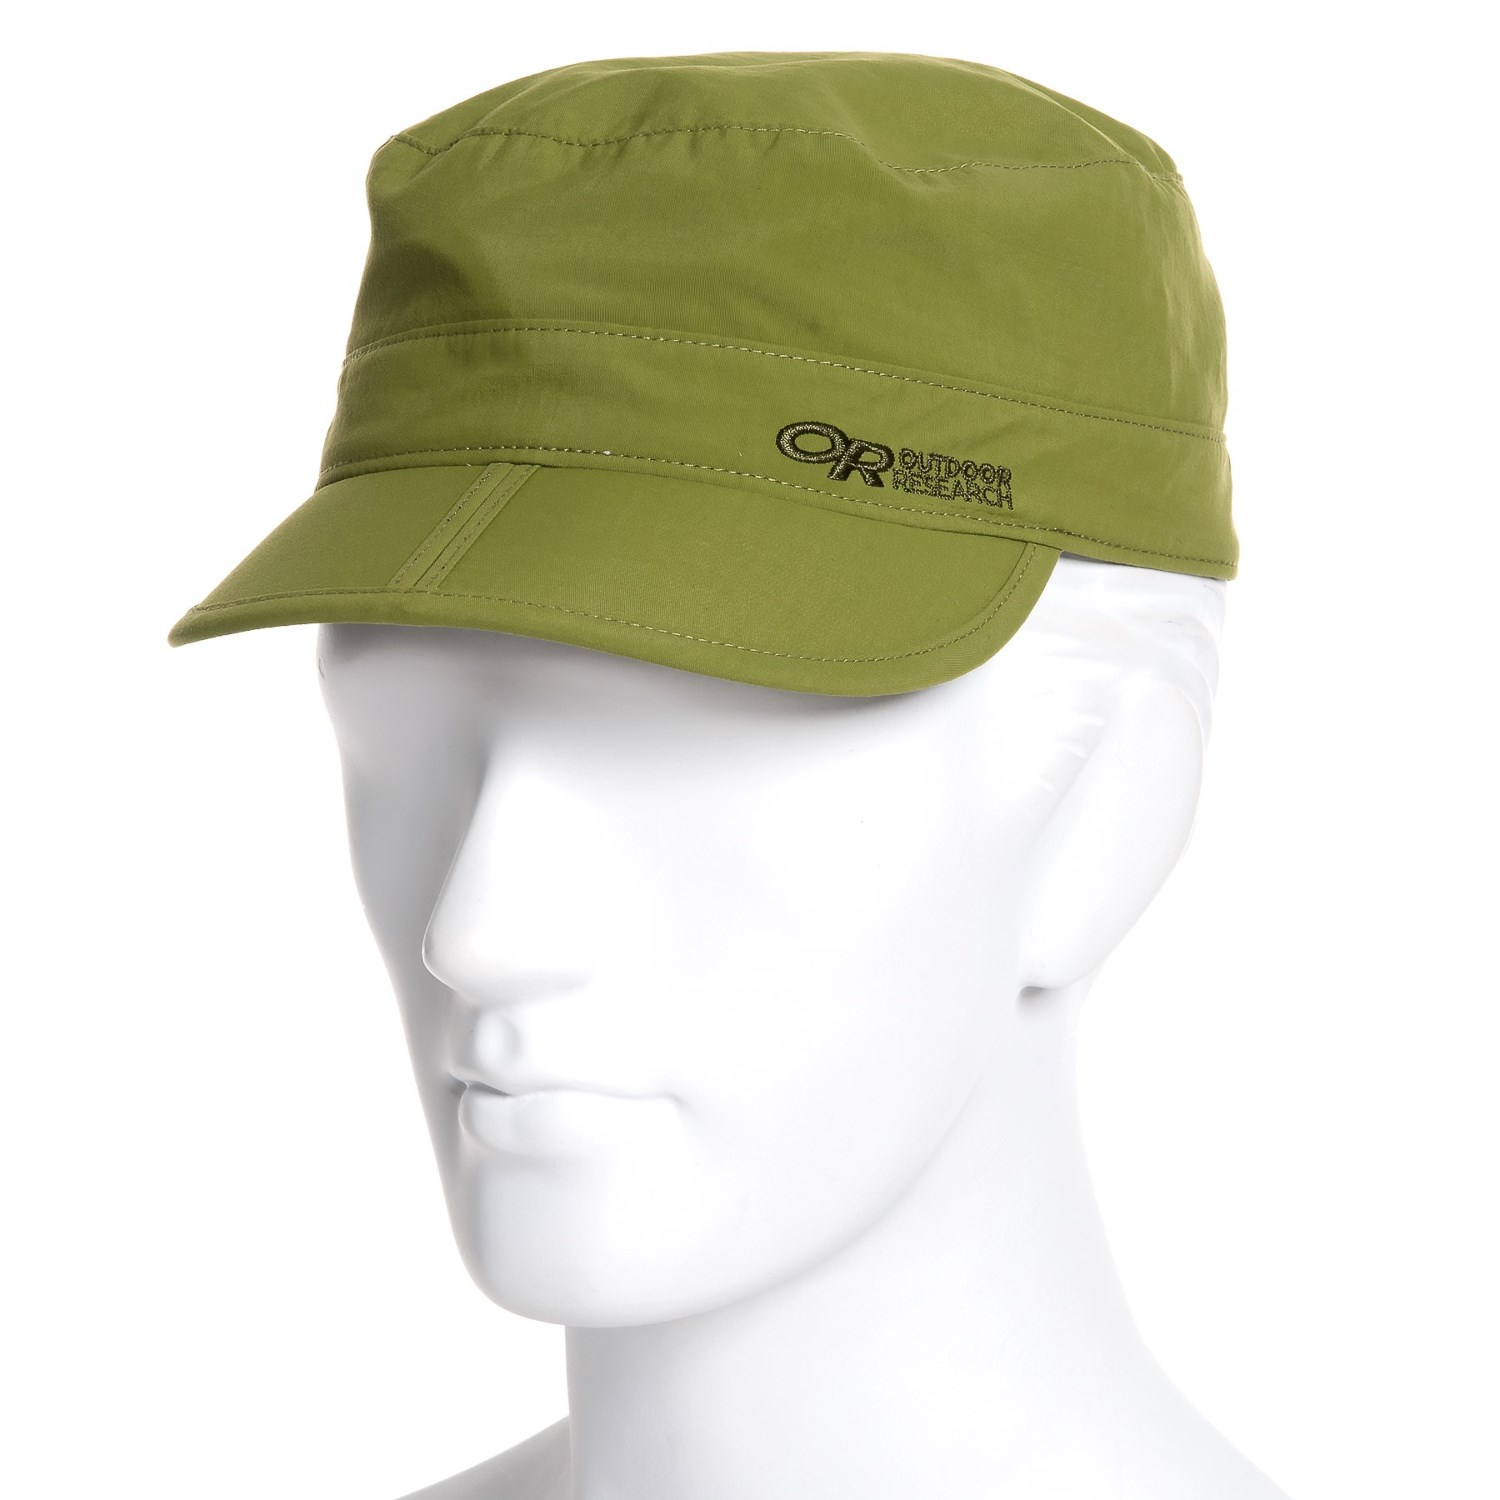 Outdoor Research Radar Pocket Cap (For Men and Women) - Save 64% 9cb1acfded6